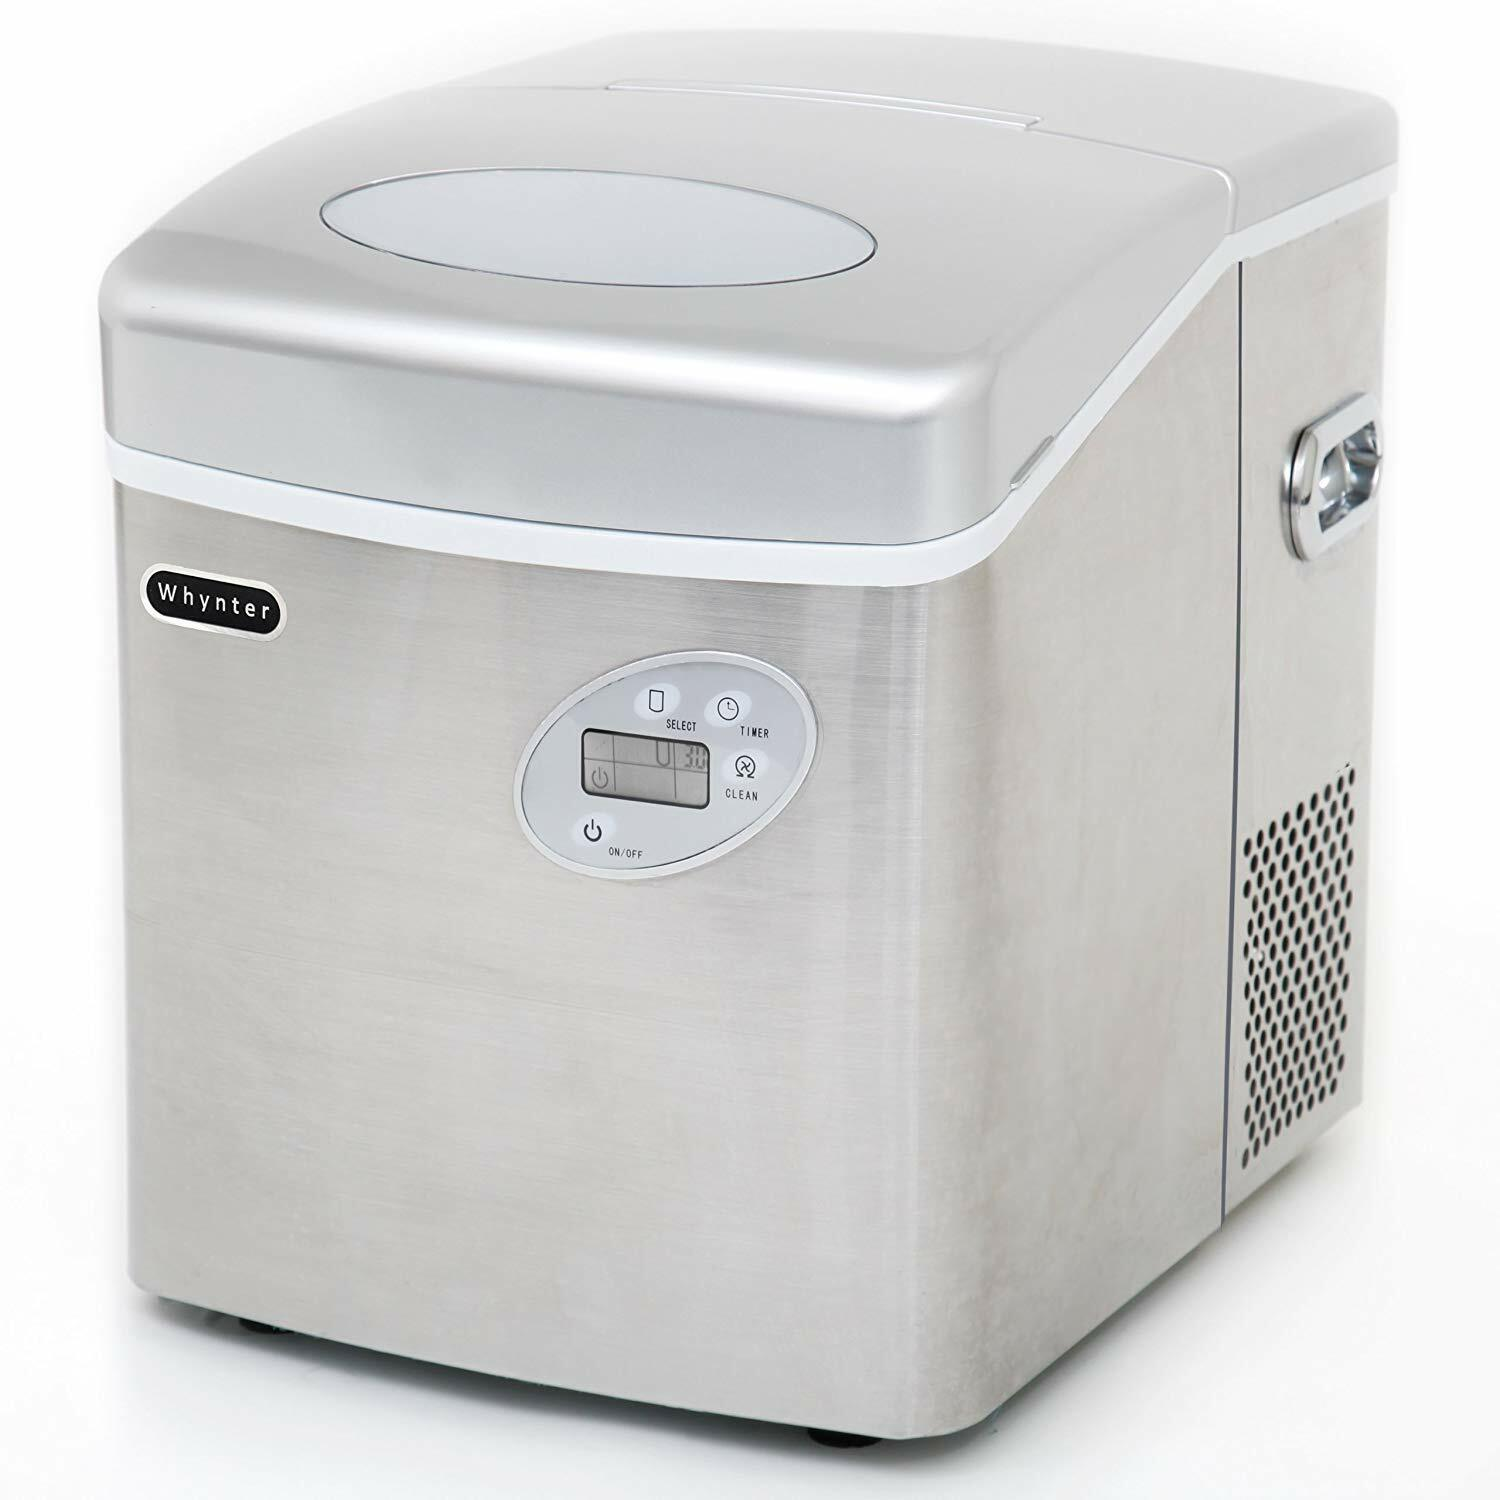 Whynter Portable Ice Maker 49 lb Capacity - Stainless Steel